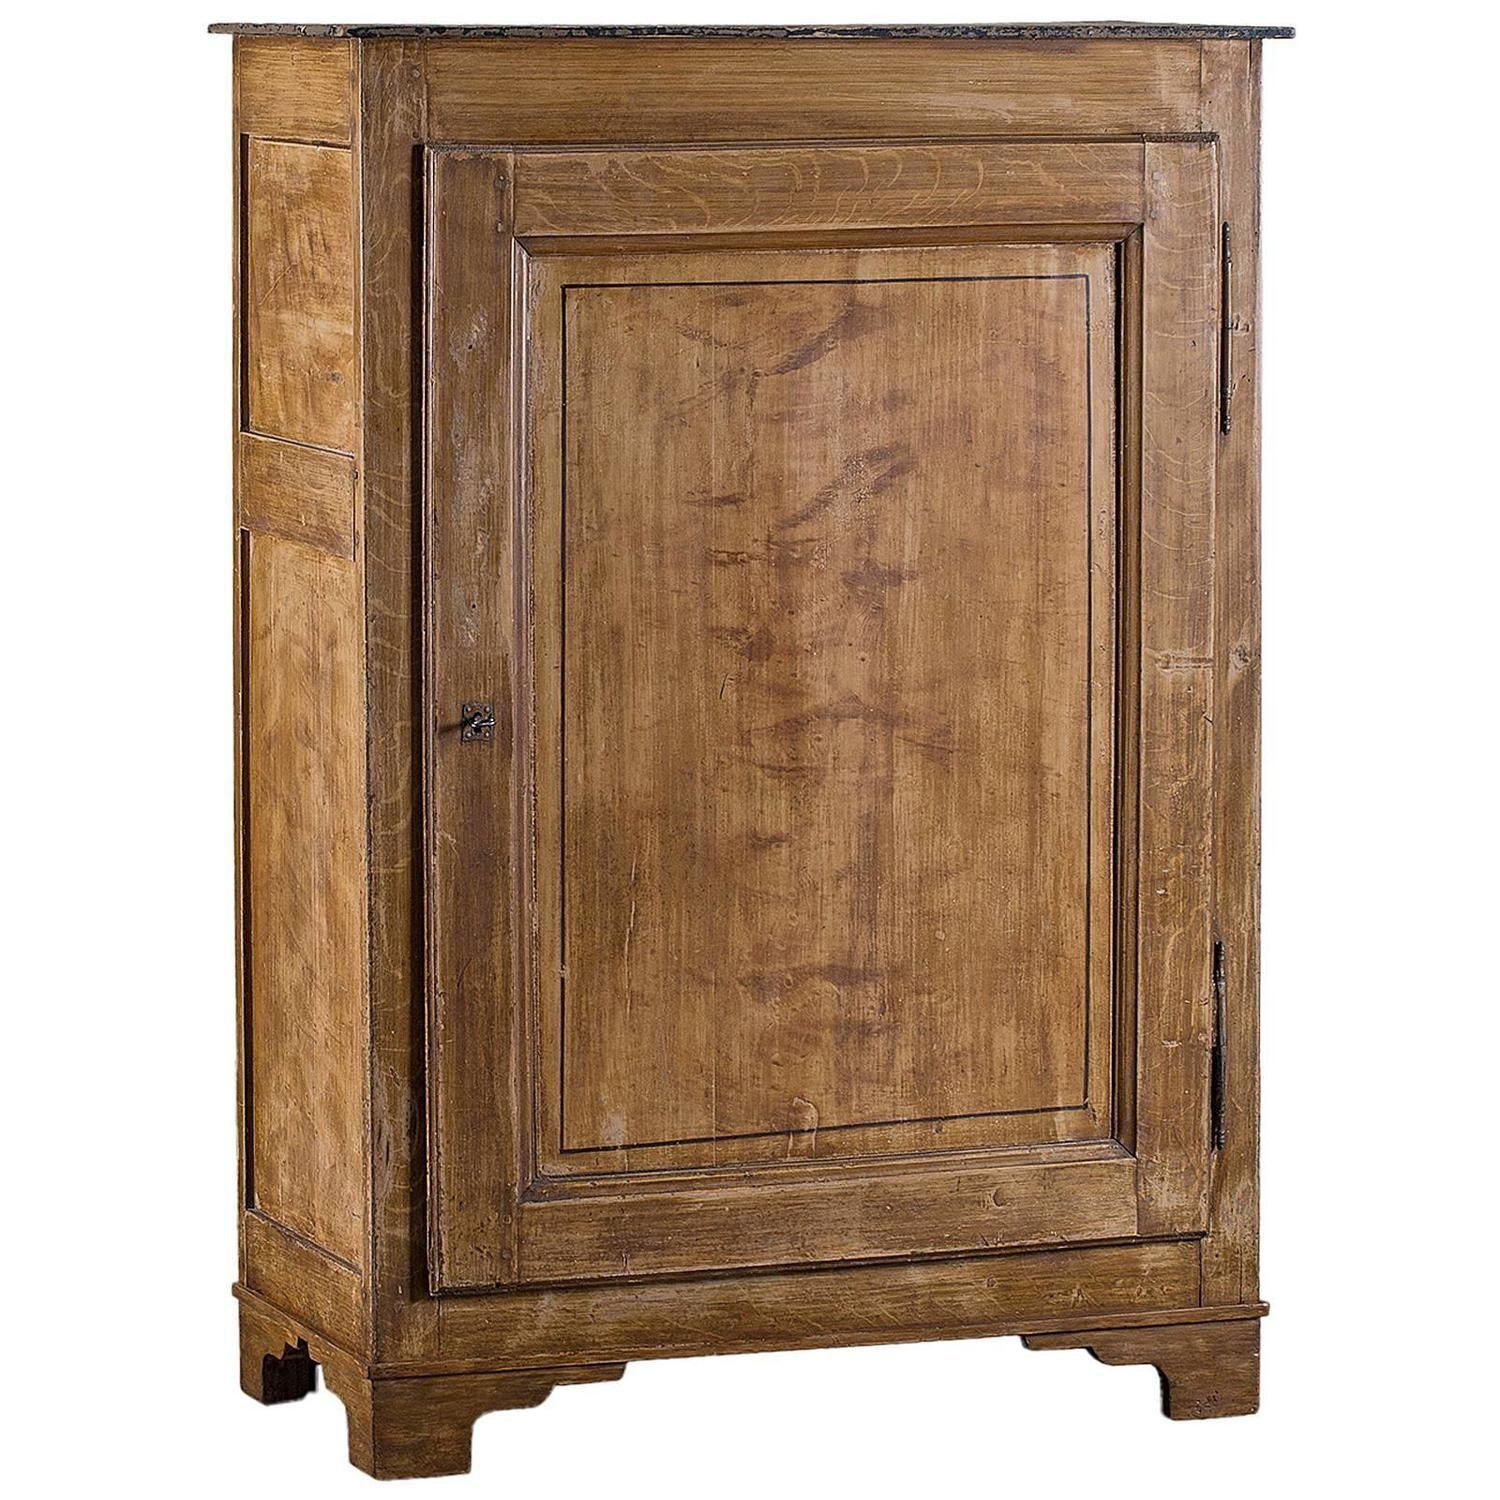 armoire furniture antique. Antique French Painted Cabinet Armoire, Circa 1865 1 Armoire Furniture